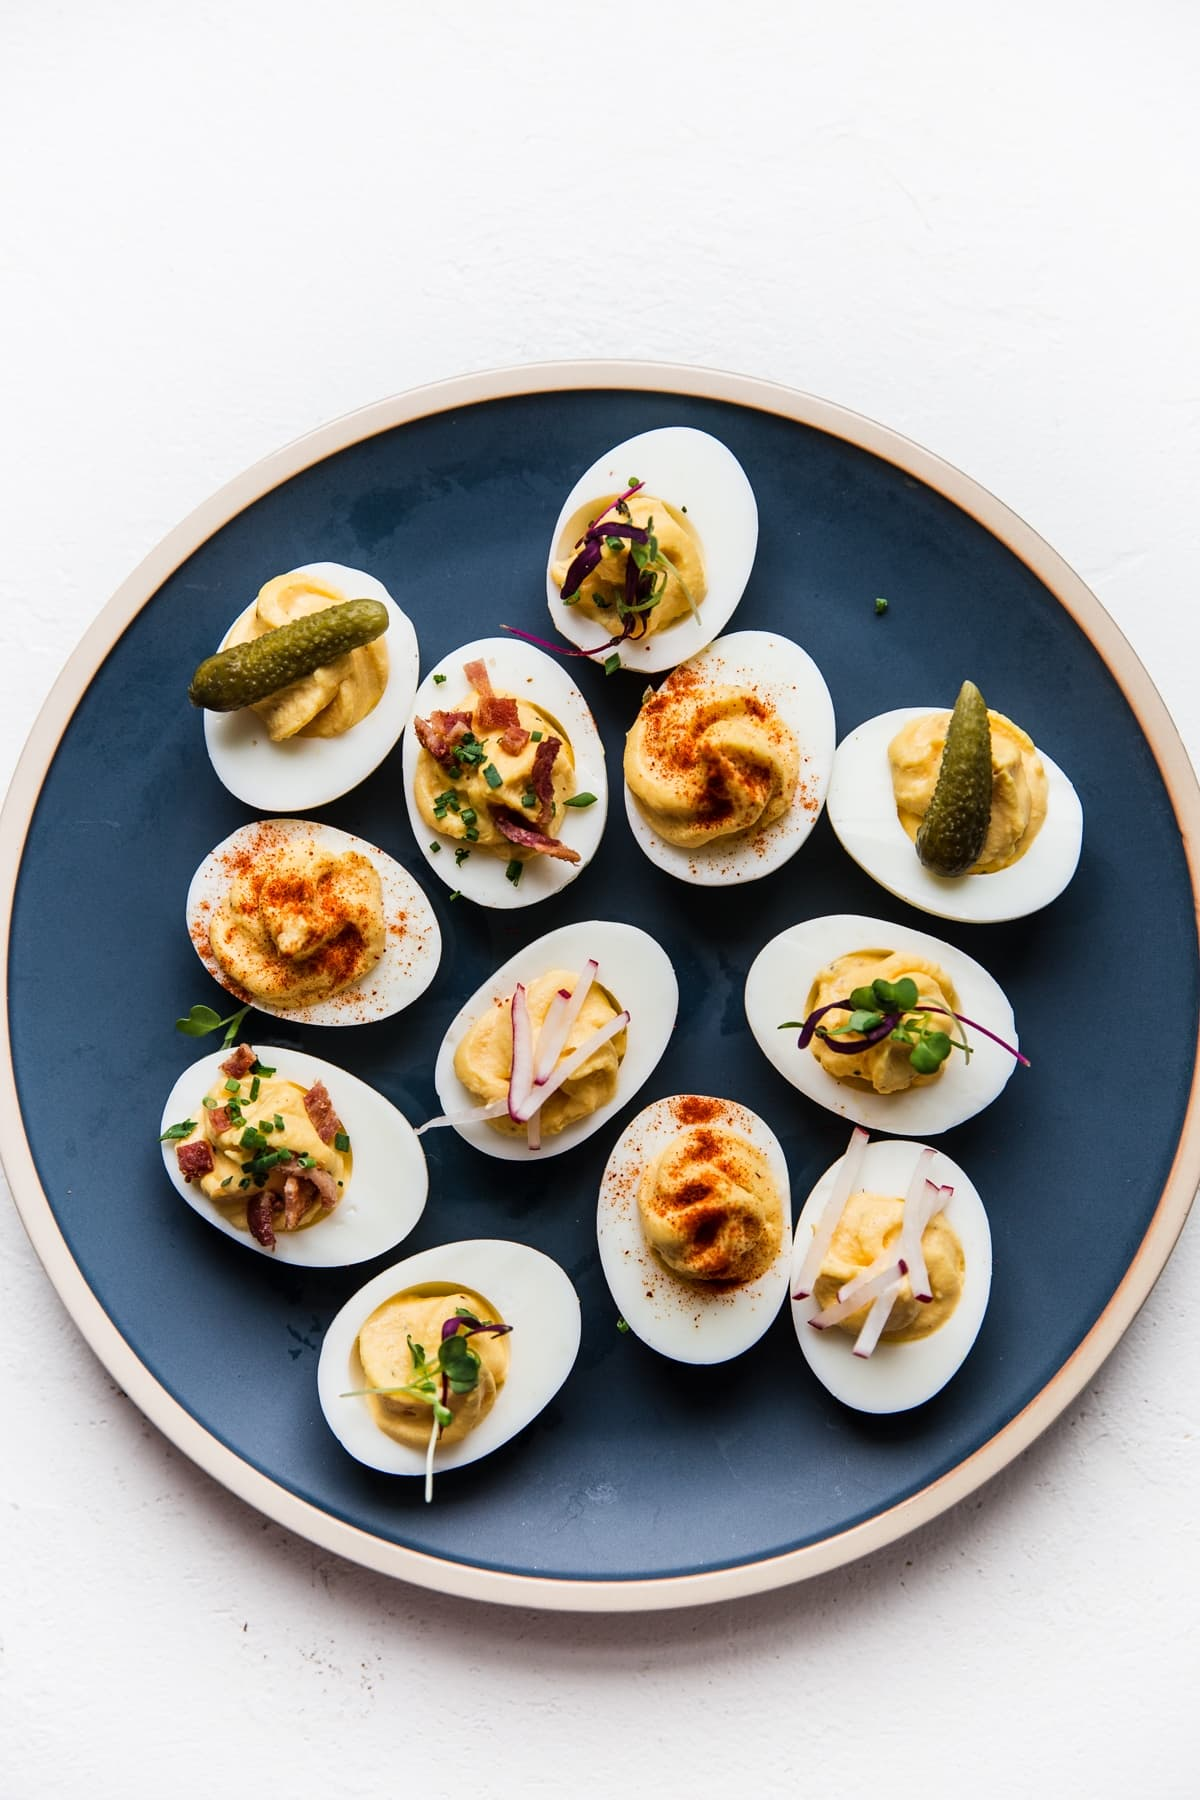 homemade deviled eggs on a blue plate topped with various toppings